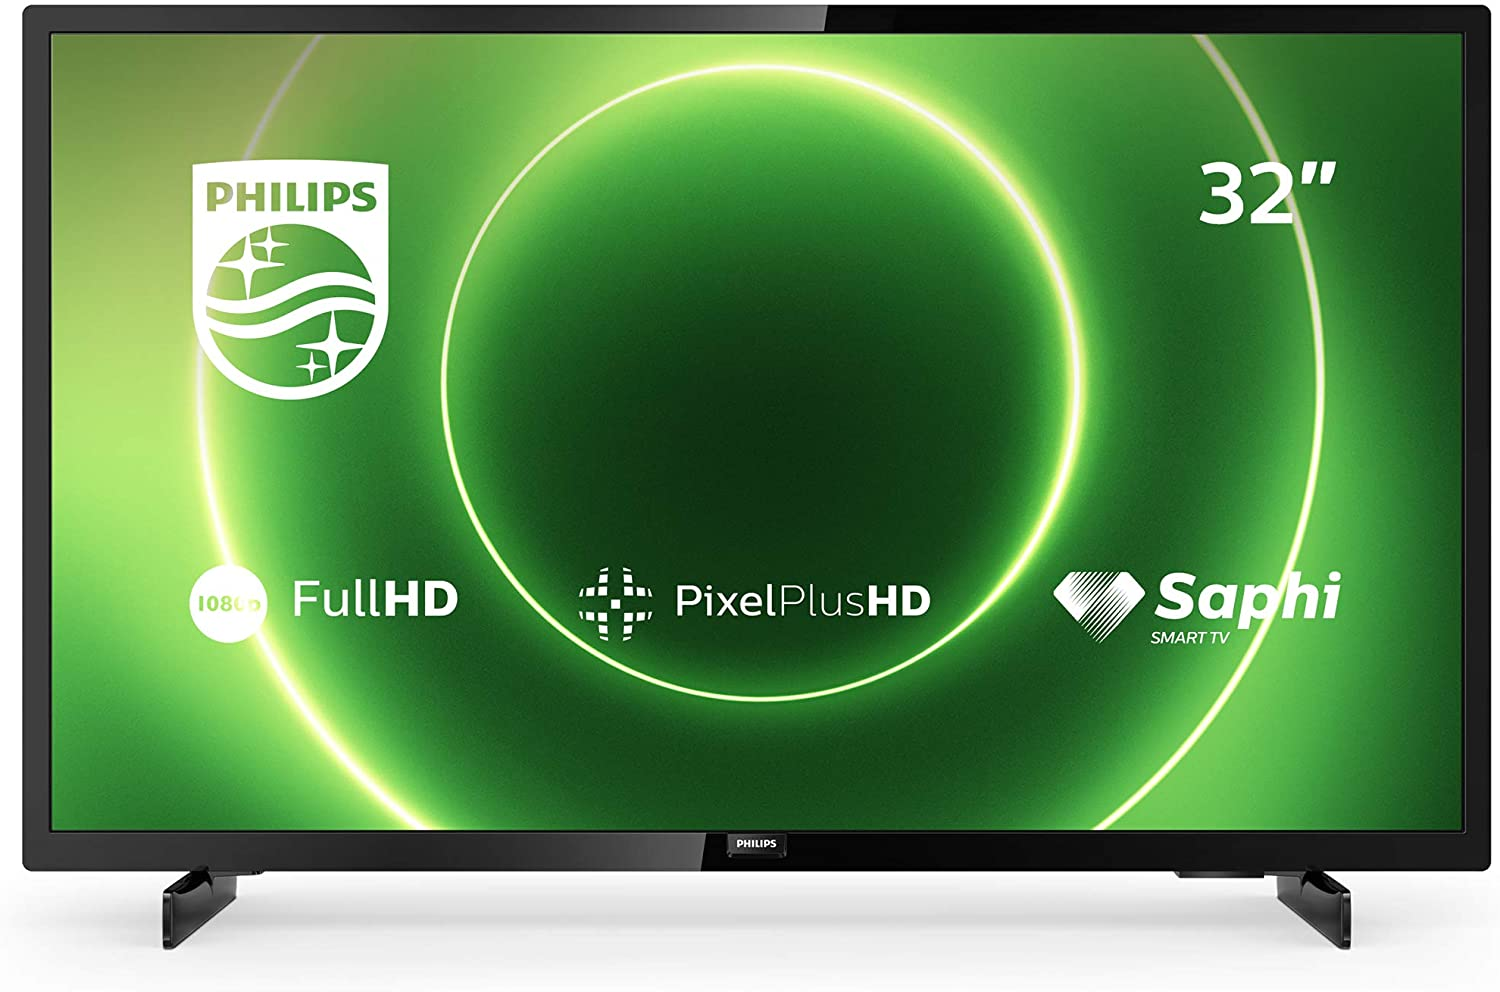 Philips 32PFS6805, HD, USB2.0, 2xHDMI, Smart, HEVC